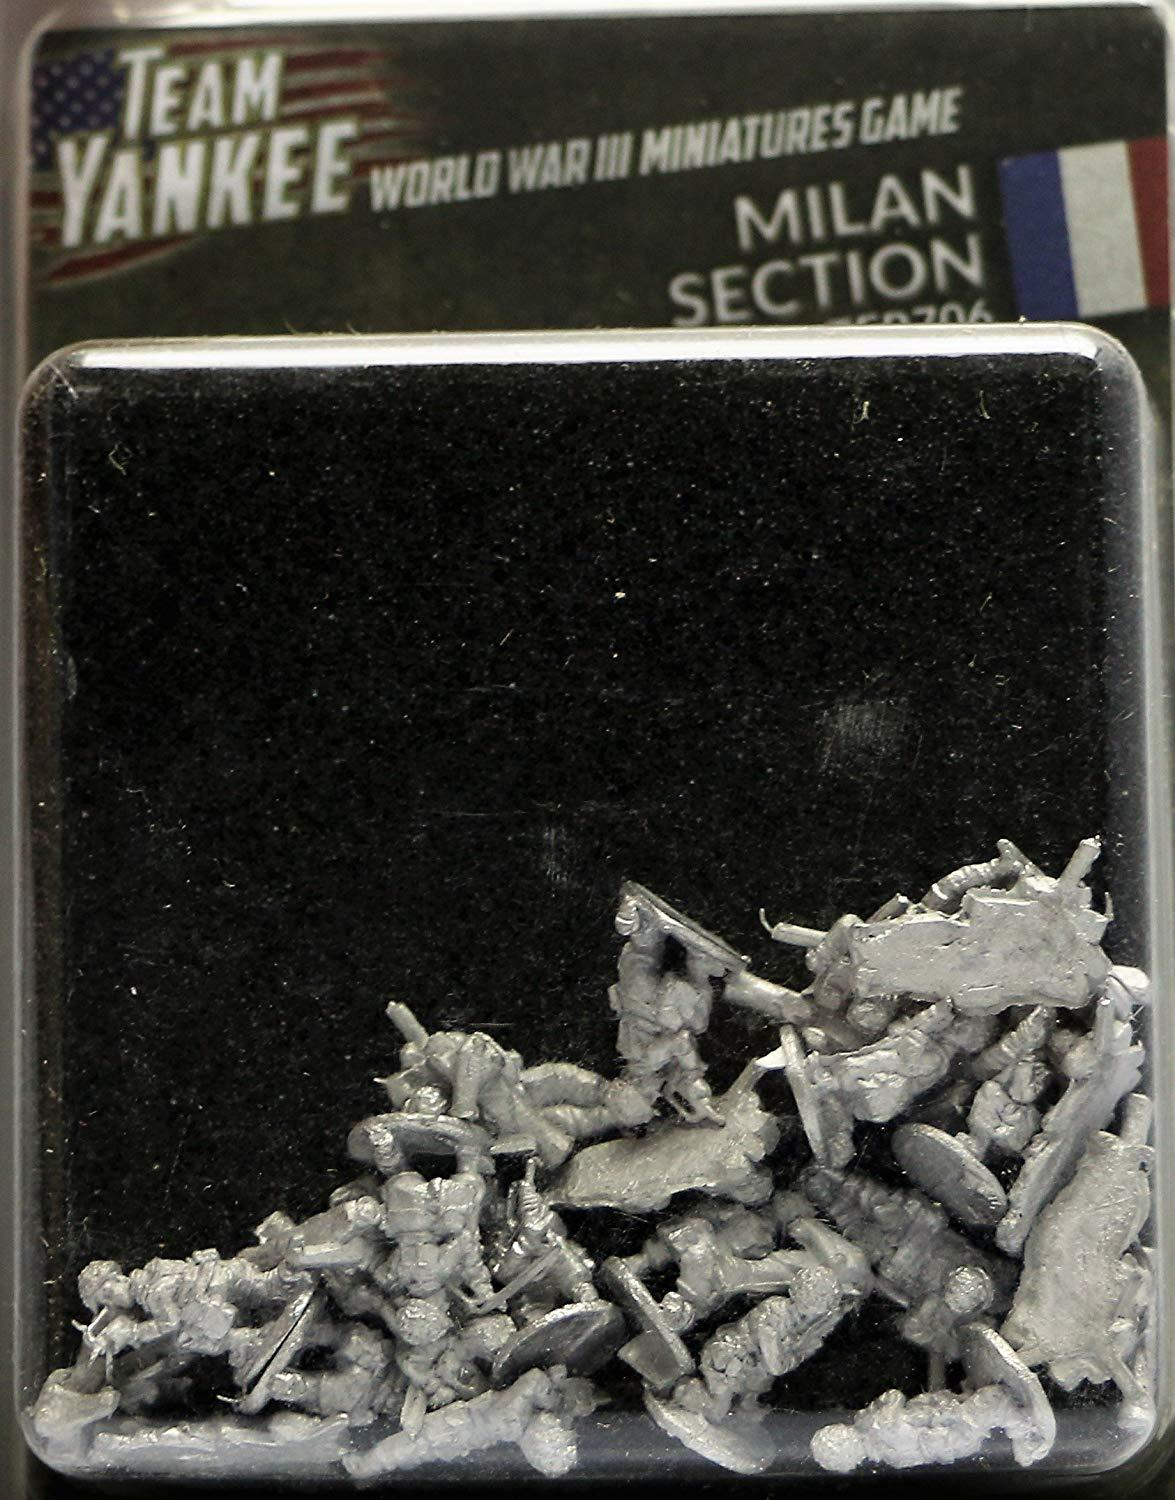 Team Yankee: French Milan Section image